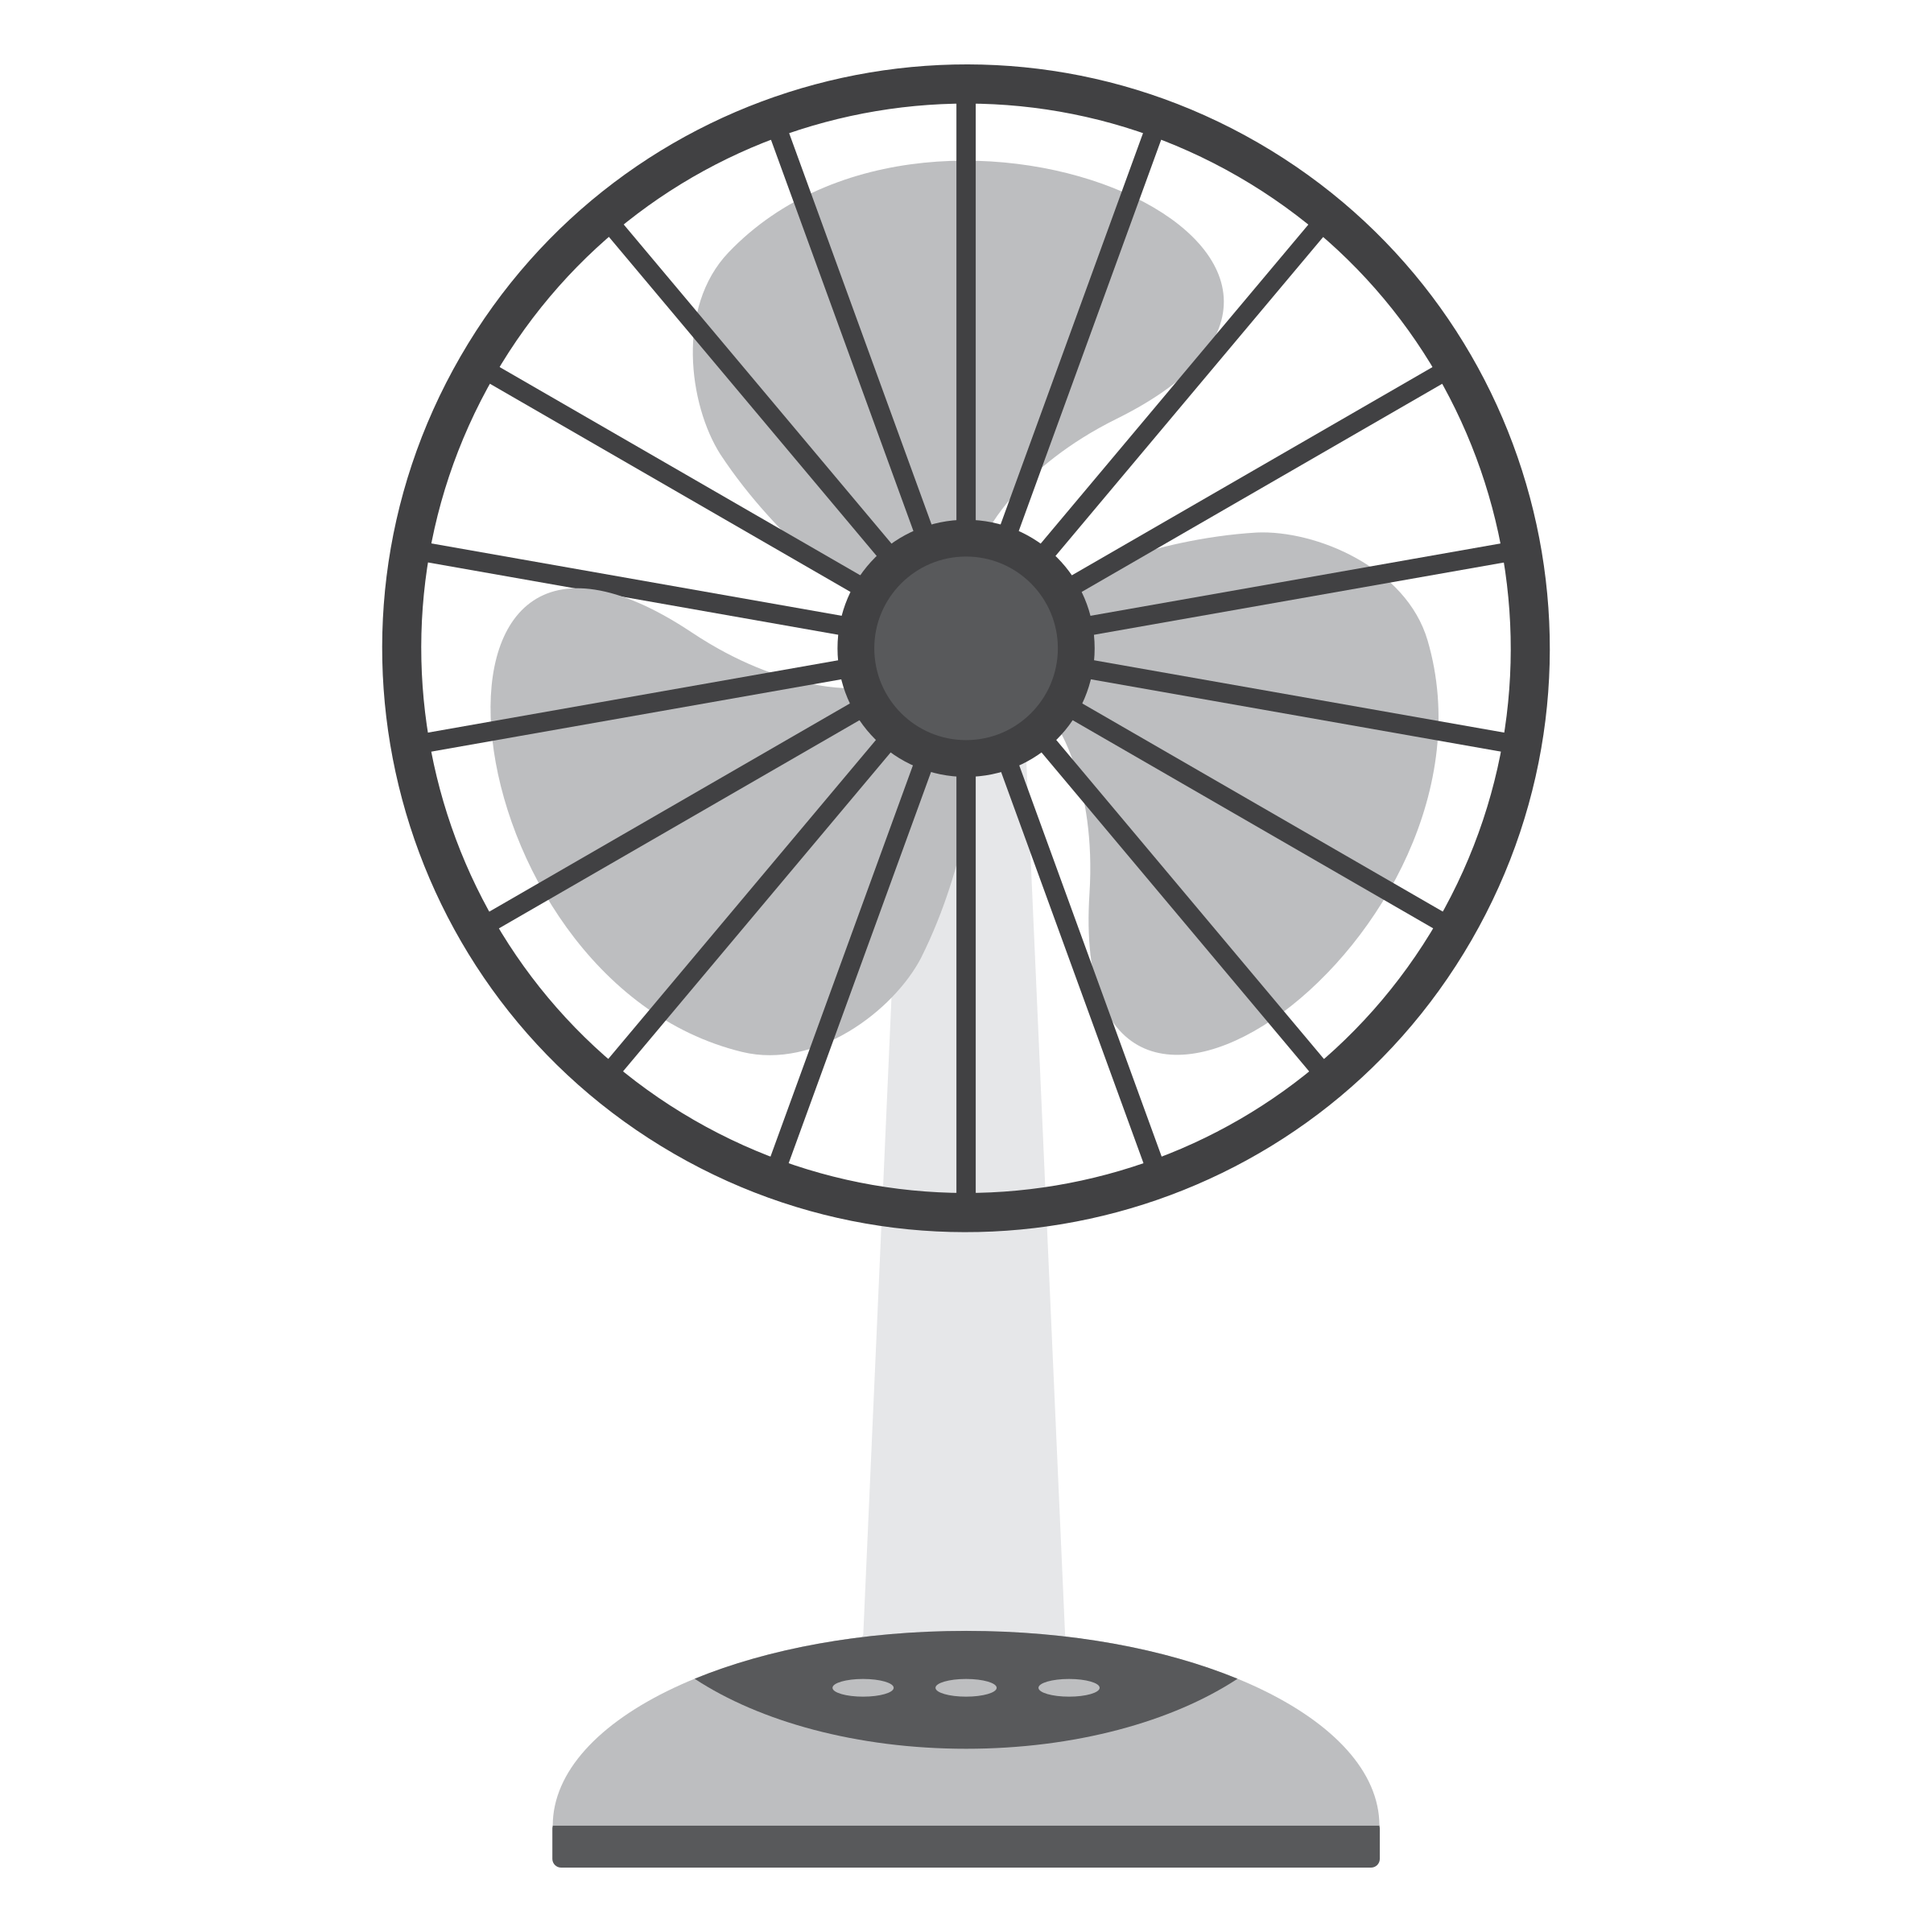 2400x2400 Electric Fan Vector Clipart Image